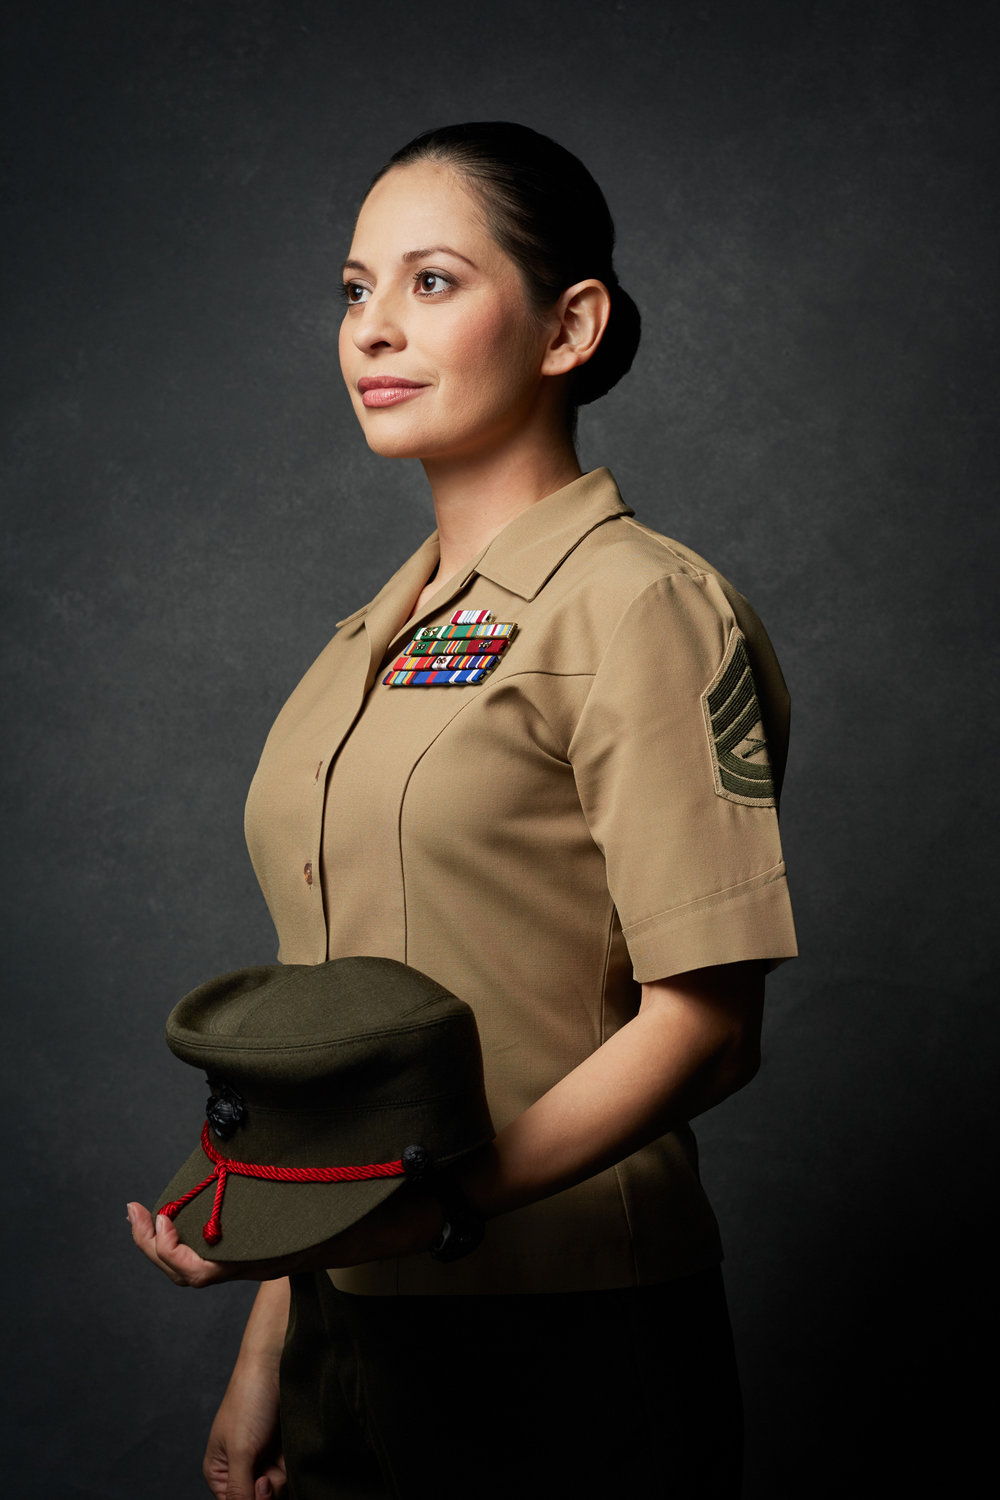 Jenn-McIntyre-Portraits-Military-Women-Project-Marines.jpg